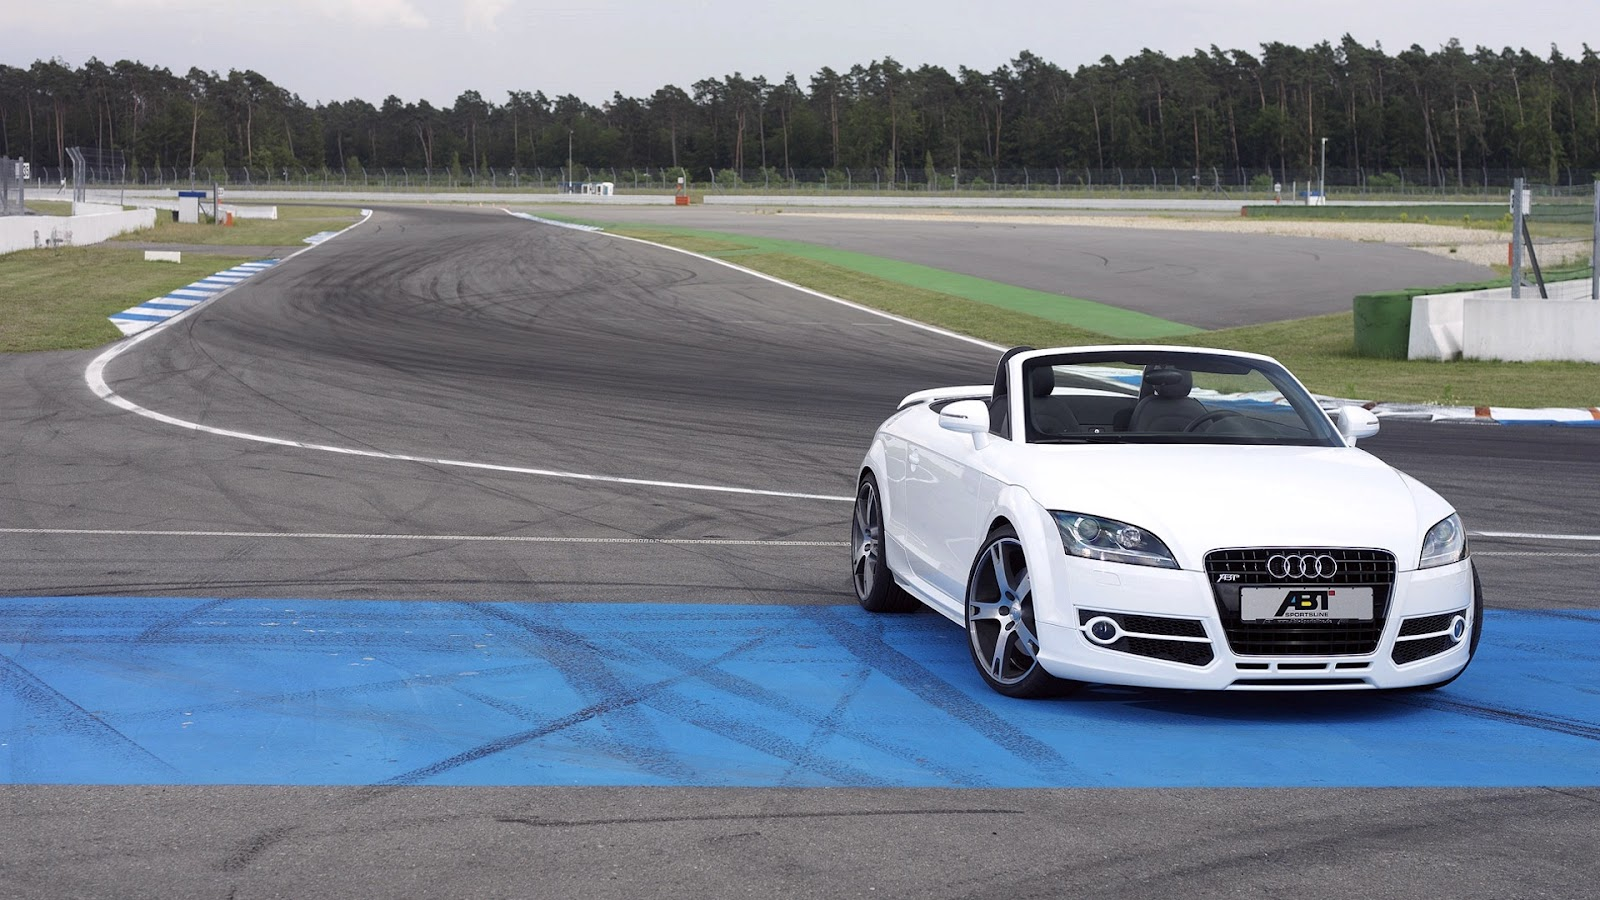 3d wallpapers: download wallpapers for free for pc of cars